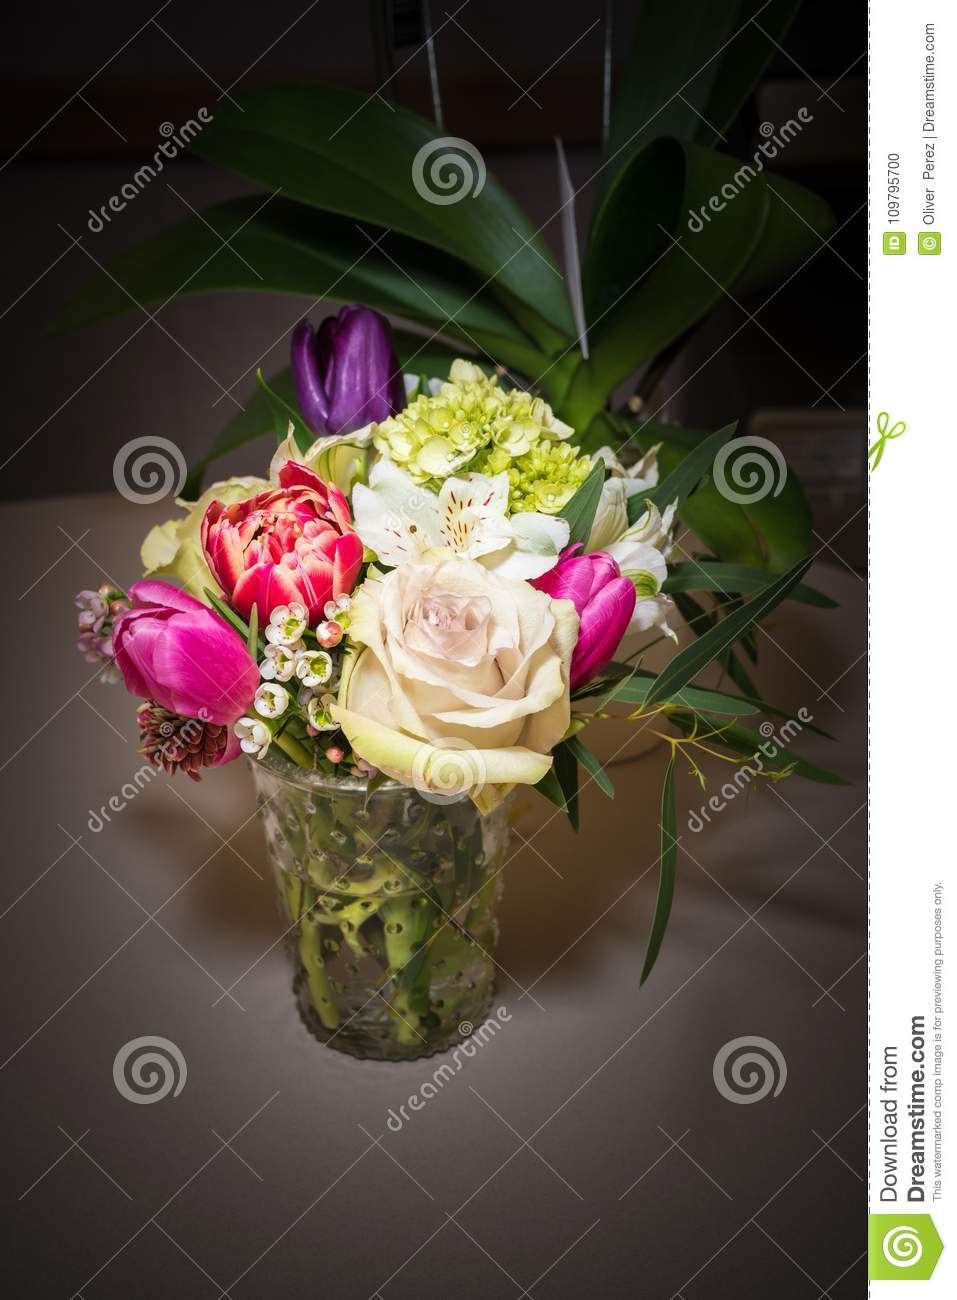 Beautiful Flower Arrangement In Glass Vase Stock Photo Image Of Beautiful Blooming 109795700